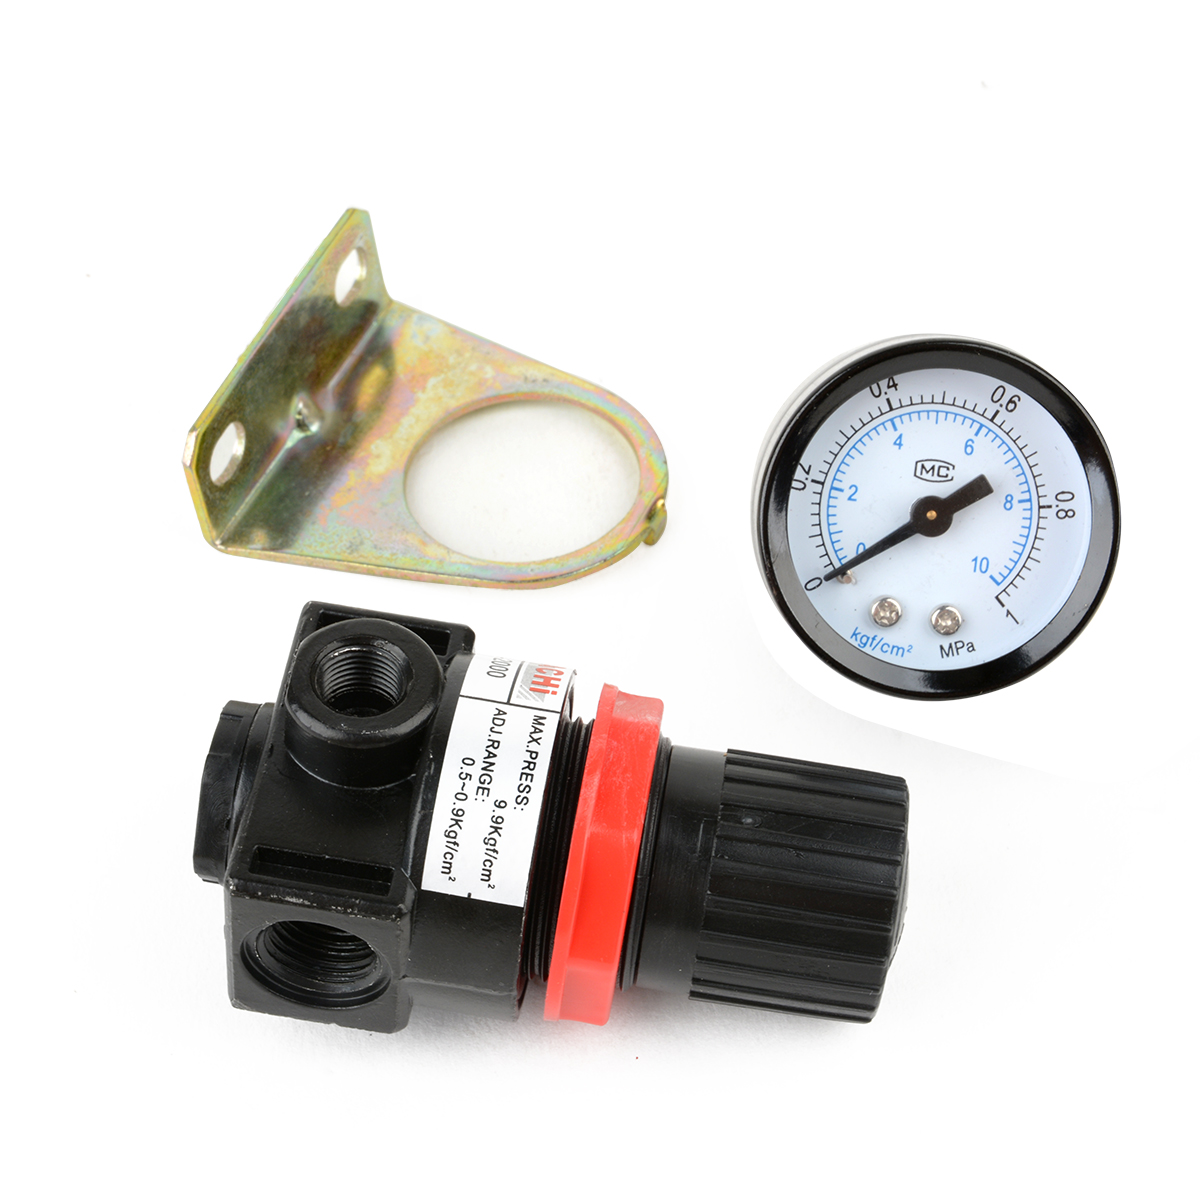 1pc Air Control Pressure Gauge Compressor Relief Regulator Regulating Valve Mayitr Pneumatic Components Parts 75*40*40mm 180psi air compressor pressure valve switch manifold relief gauges regulator set